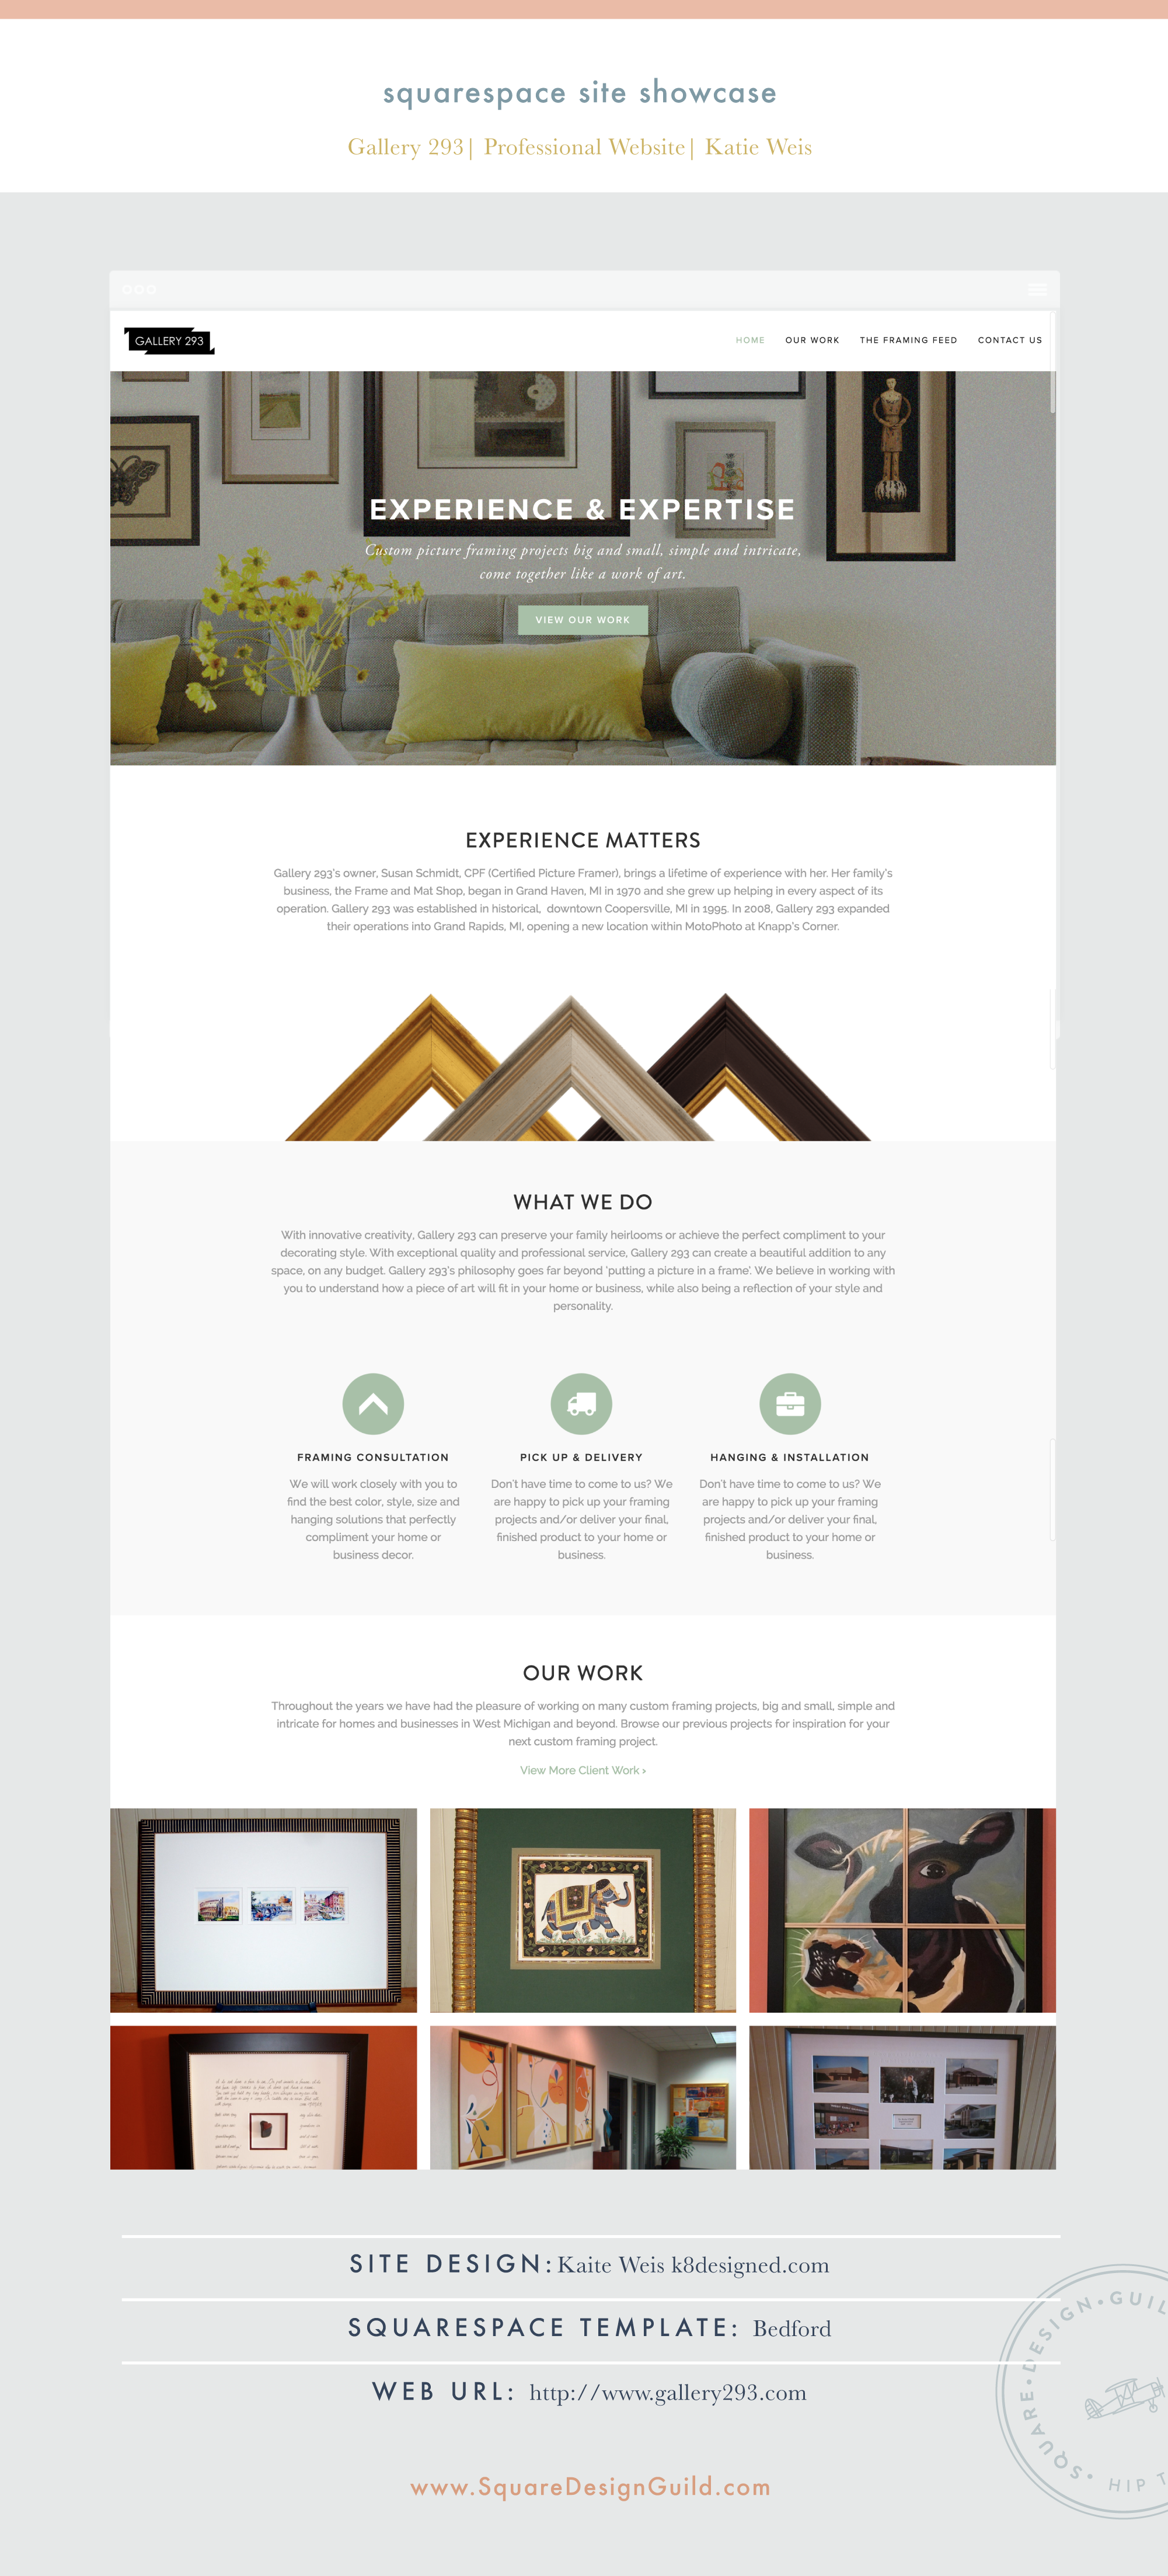 Square Design Guild | Squarespace Site Showcase | Gallery 293 by Kate Weis on Bedford Template